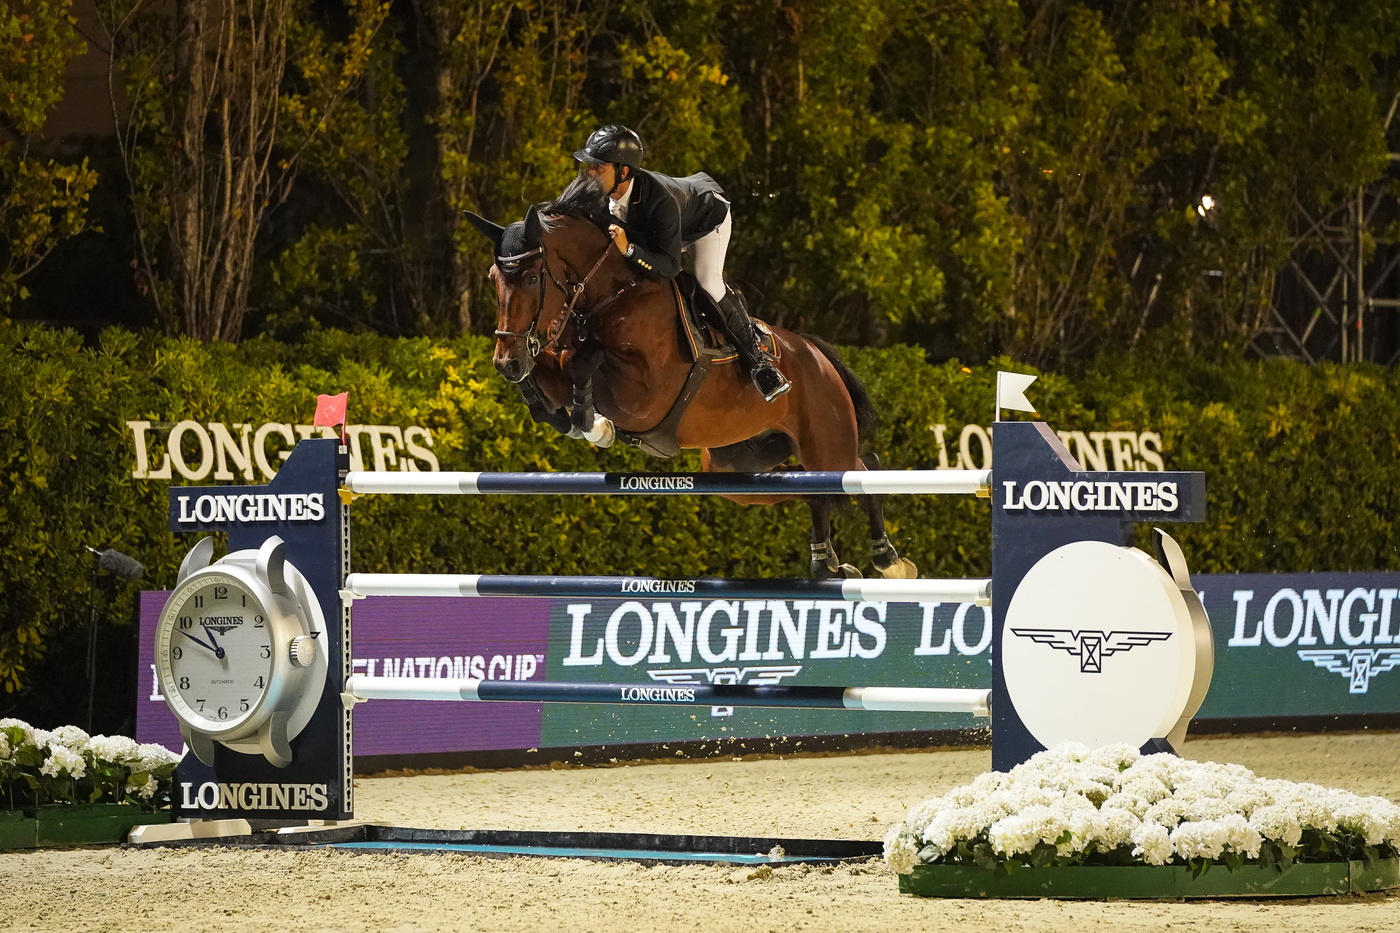 Longines Equestrian Event: Thrilling sports performances and emotional moments at the Longines FEI Jumping Nations CupTM Final with Longines Ambassador of Elegance Simon Baker 4